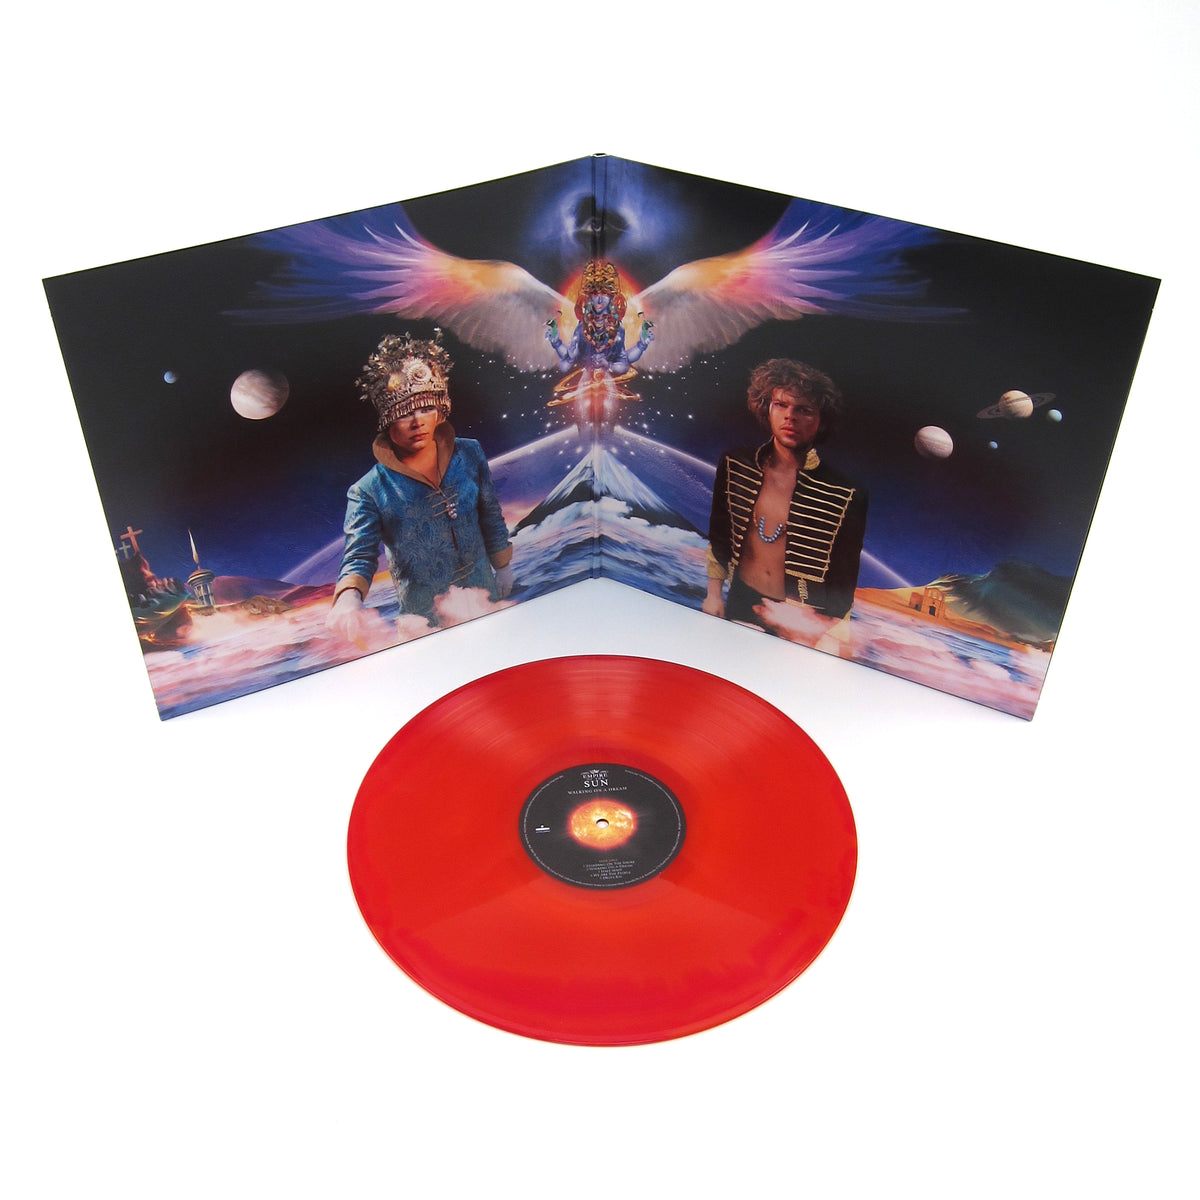 Empire Of The Sun: Walking On A Dream (180g, Orange Colored Vinyl) Vinyl LP